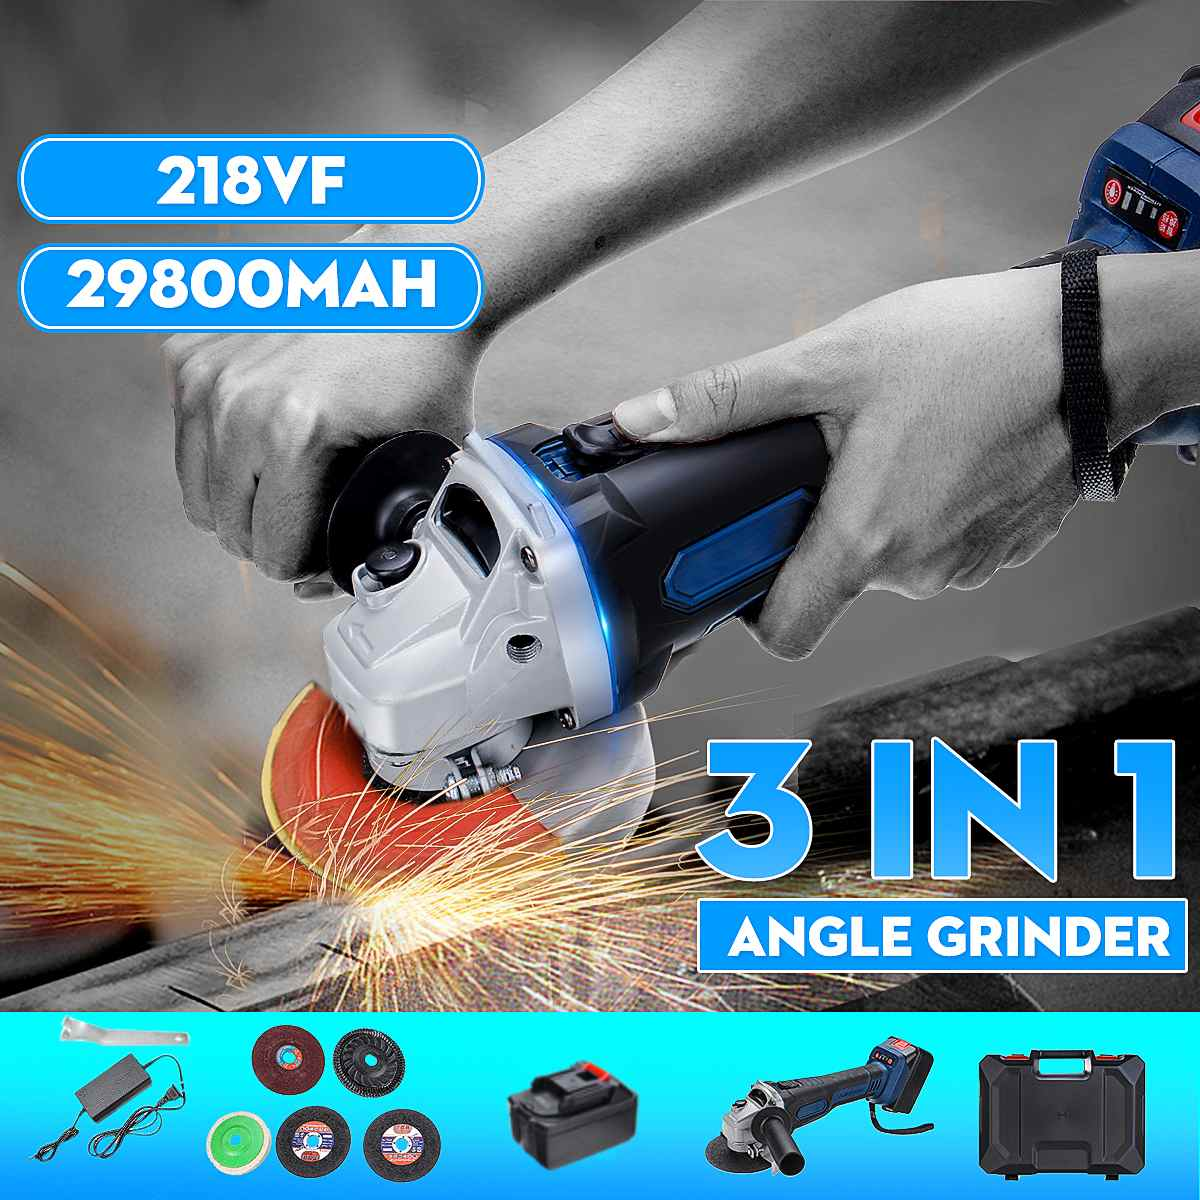 218vf 29800ma Cordless Brushless Electric Angle Grinder Polishing Grinding Cutting 3 in 1 Machine Power Cutting Tool218vf 29800ma Cordless Brushless Electric Angle Grinder Polishing Grinding Cutting 3 in 1 Machine Power Cutting Tool